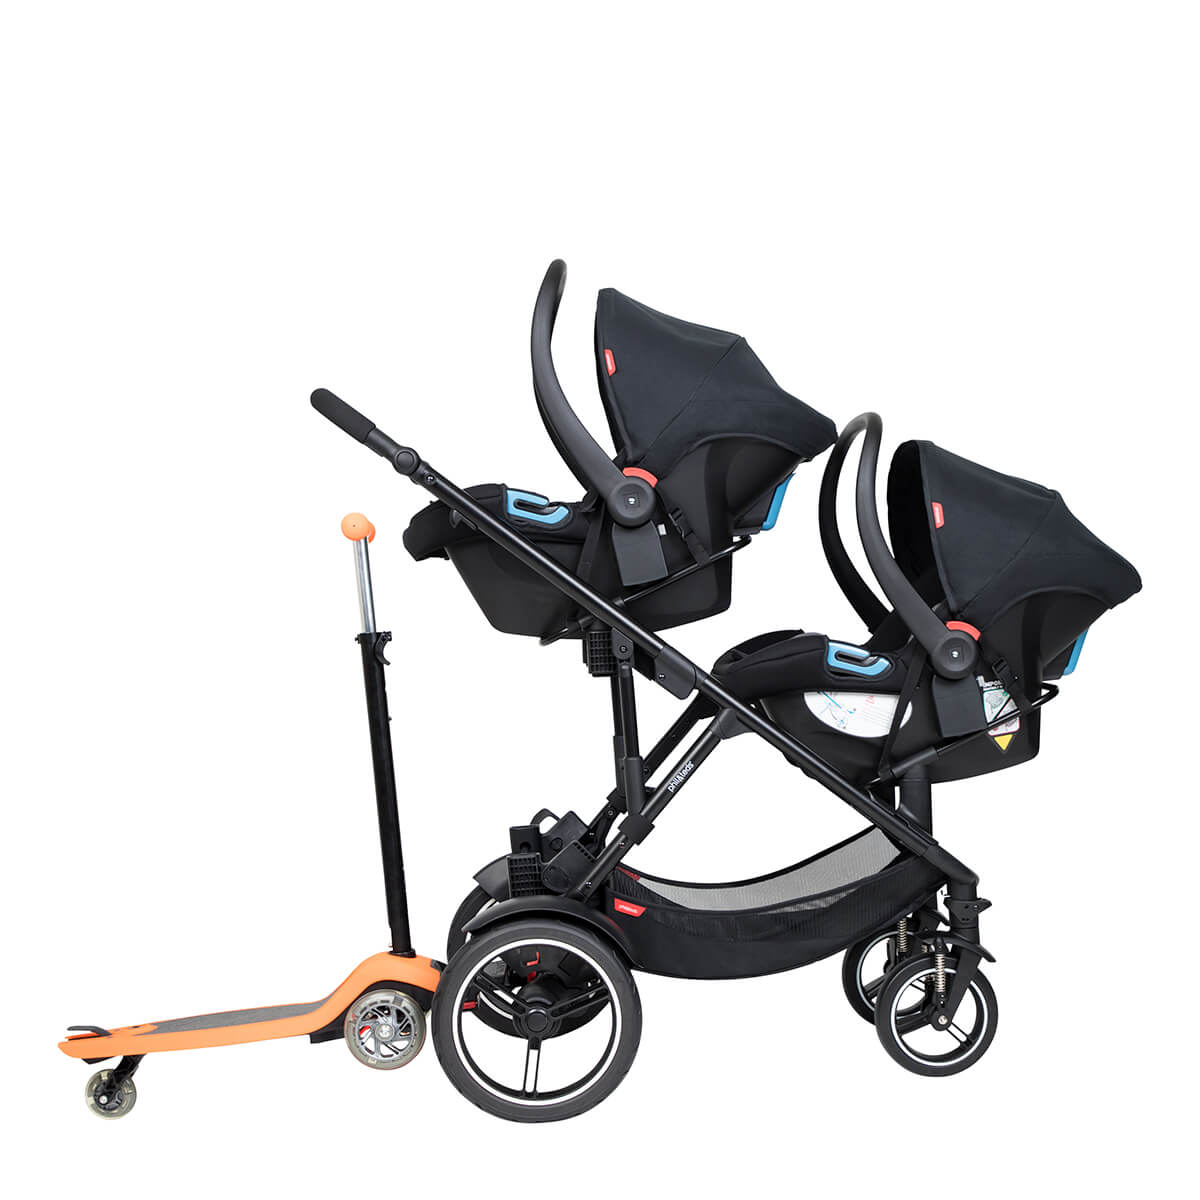 https://cdn.accentuate.io/4509529571416/19272835367000/philteds-voyager-buggy-with-double-travel-systems-and-freerider-stroller-board-in-the-rear-v1626484746479.jpg?1200x1200